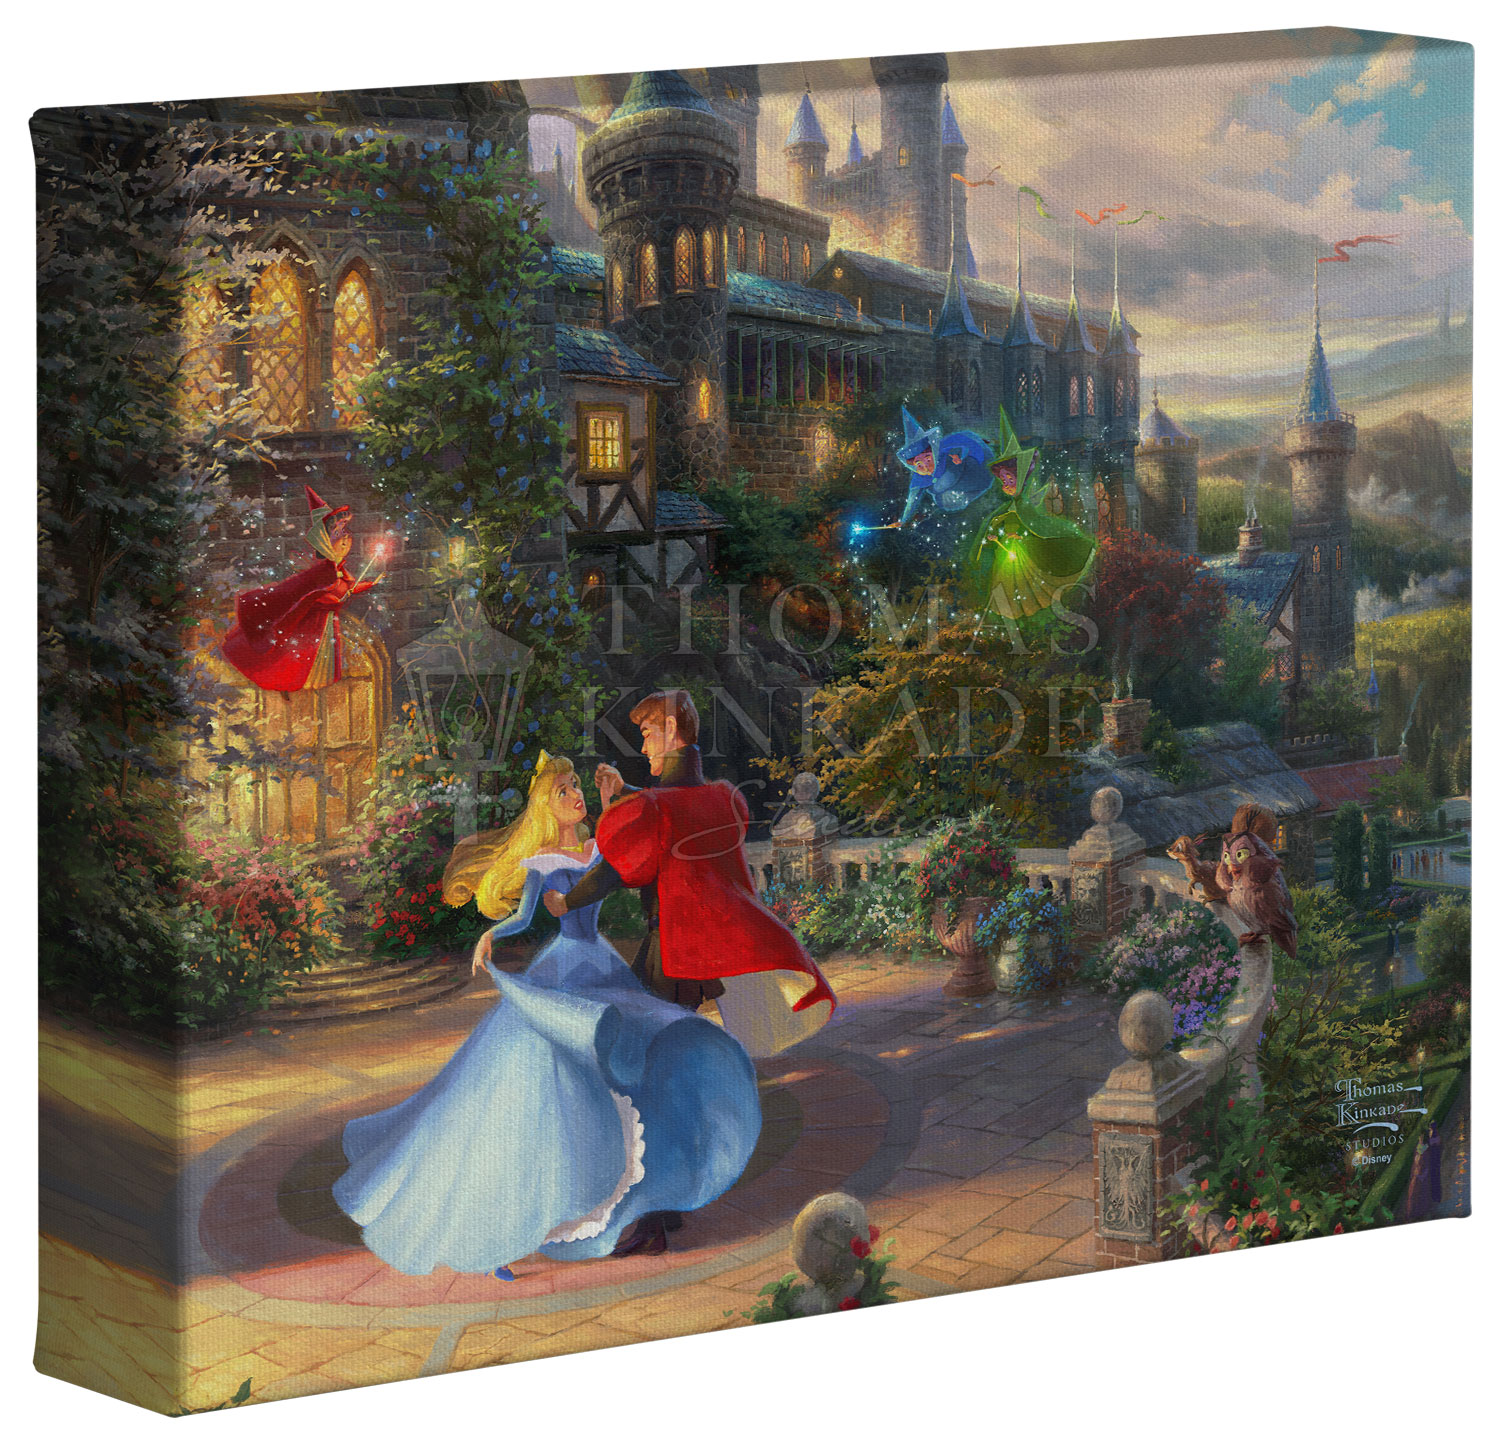 Sleeping Beauty Dancing in the Enchanted Light – 8″ x 10″ Gallery Wrapped Canvas